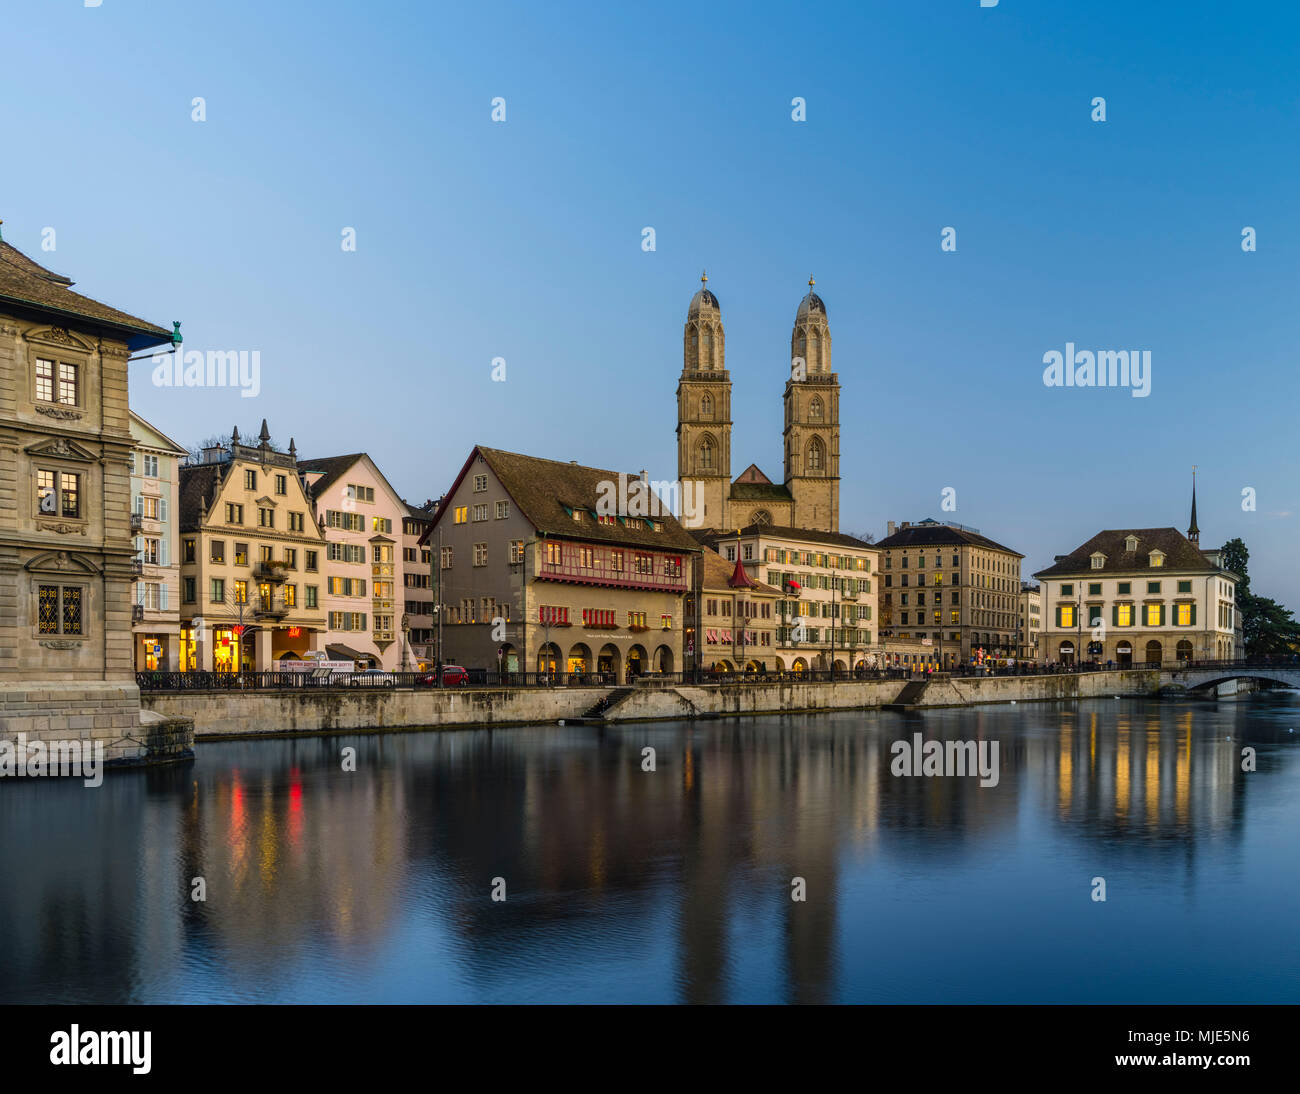 Limmatquai with Grossmuenster, 'Haus zum Rüden' and 'Helmhaus' in the evening at the blue hour - Stock Image